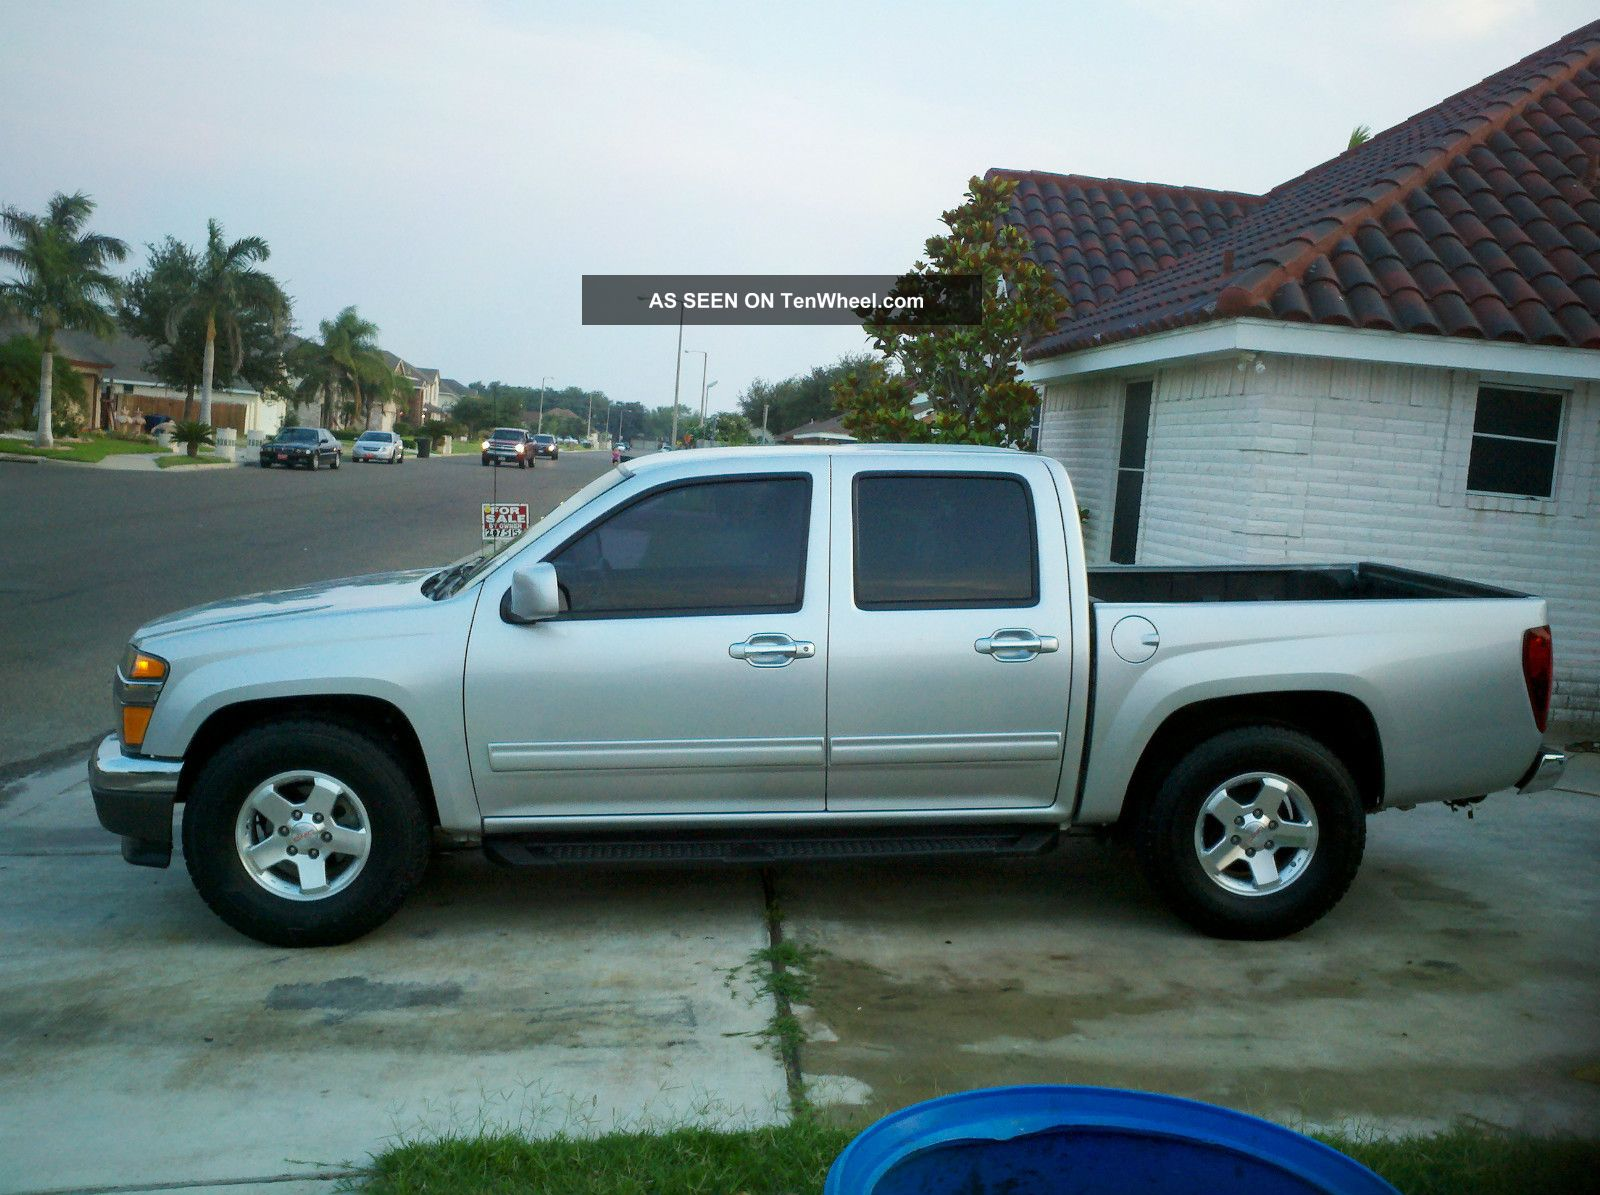 Chevrolet Silverado Gmc Sierra New Engines Enduring Qualities together with 163 1401 2015 Gmc Canyon First Look additionally 2016 Gmc Suv With  fortable Third Row Seats also 2018 Gmc Sierra further 2018. on 2014 gmc sierra all terrain towing capacity